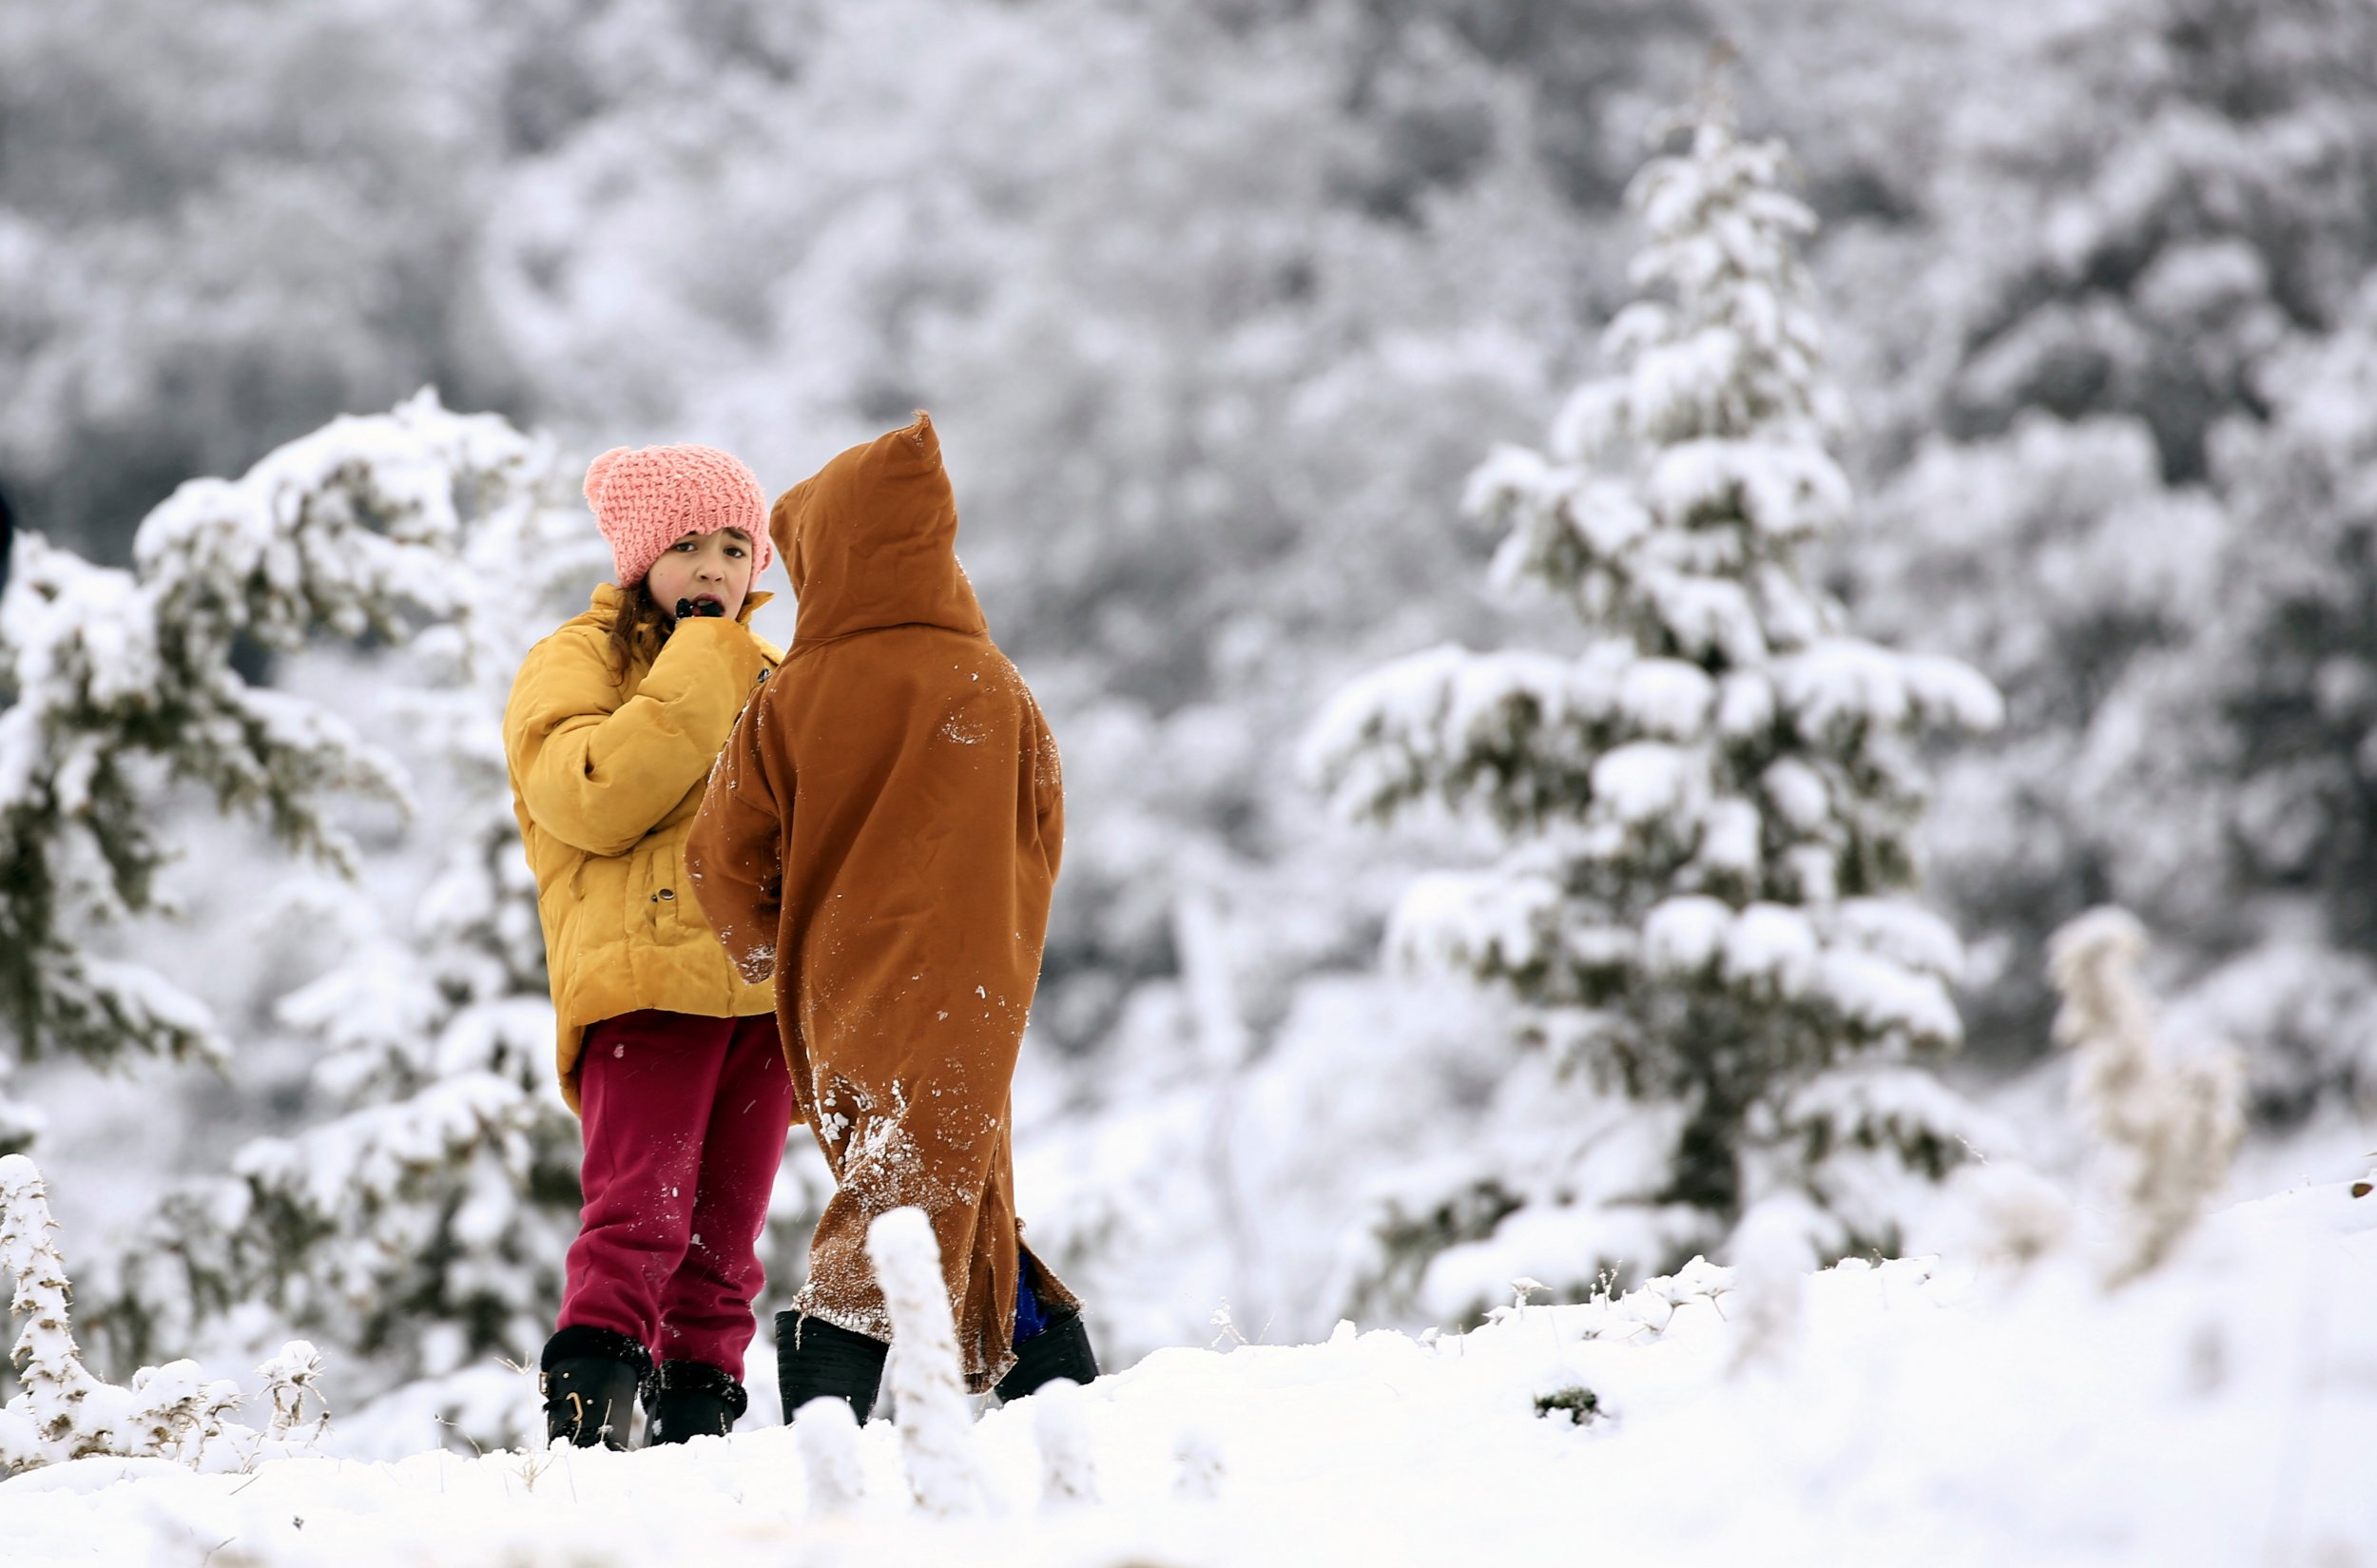 Children talking in the snow